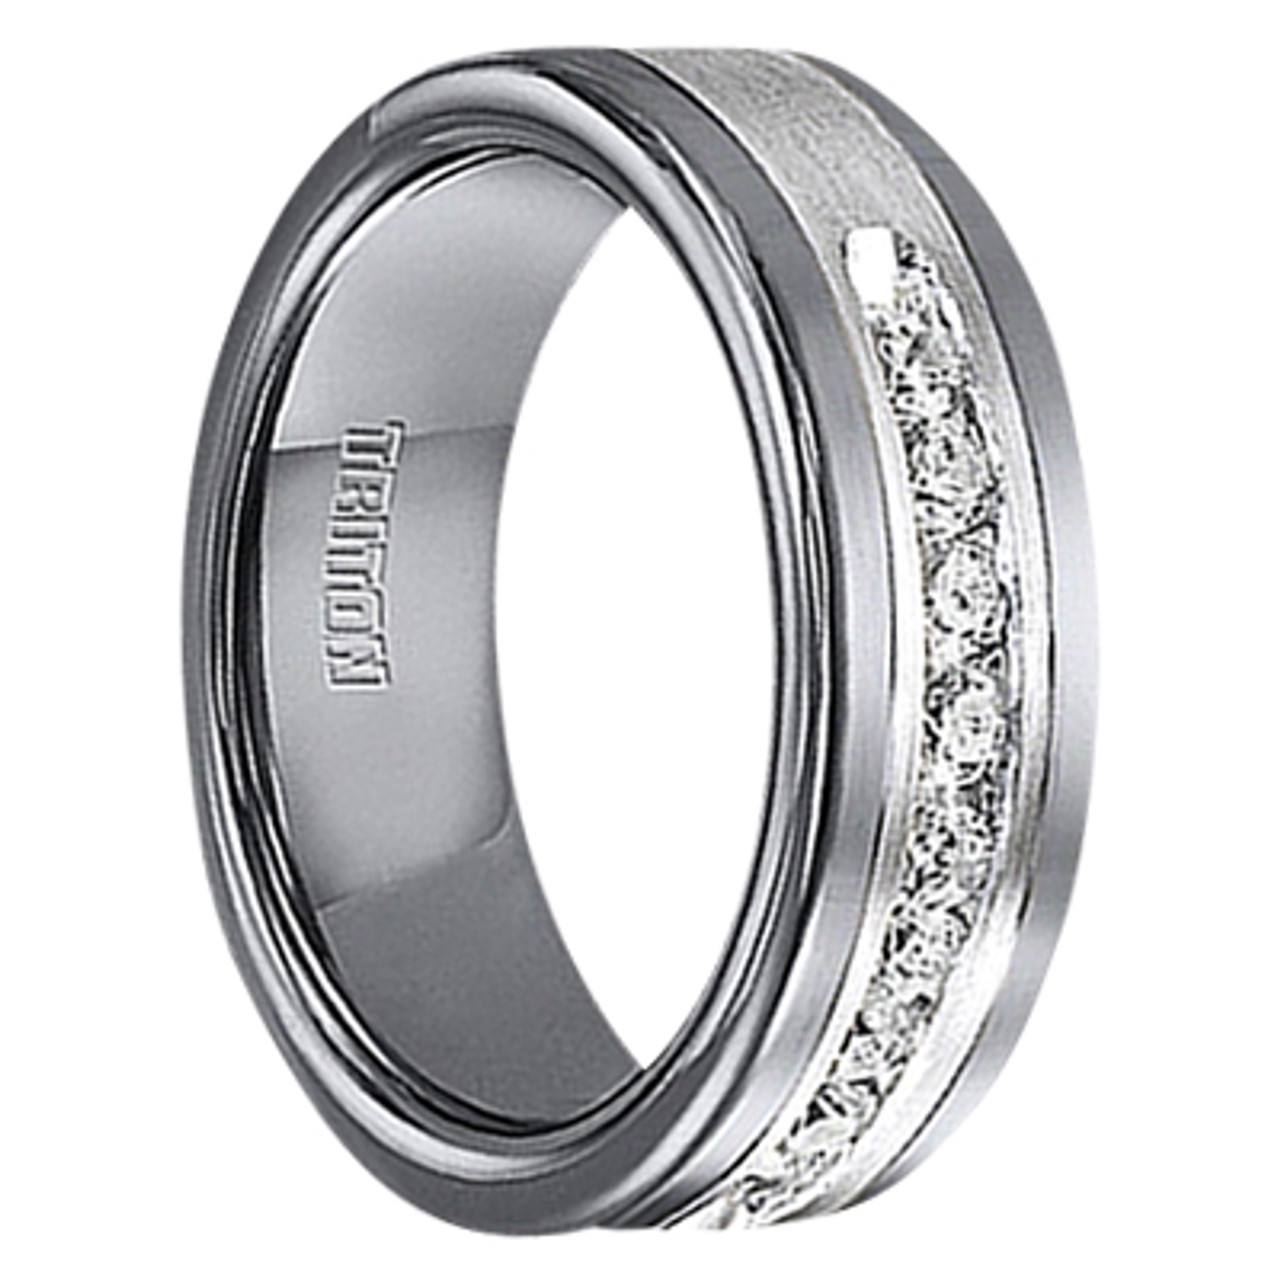 It is just a graphic of 38/38 cwt Diamond Unique Mens Wedding Bands in Sterling Silver - Tungsten - A38C